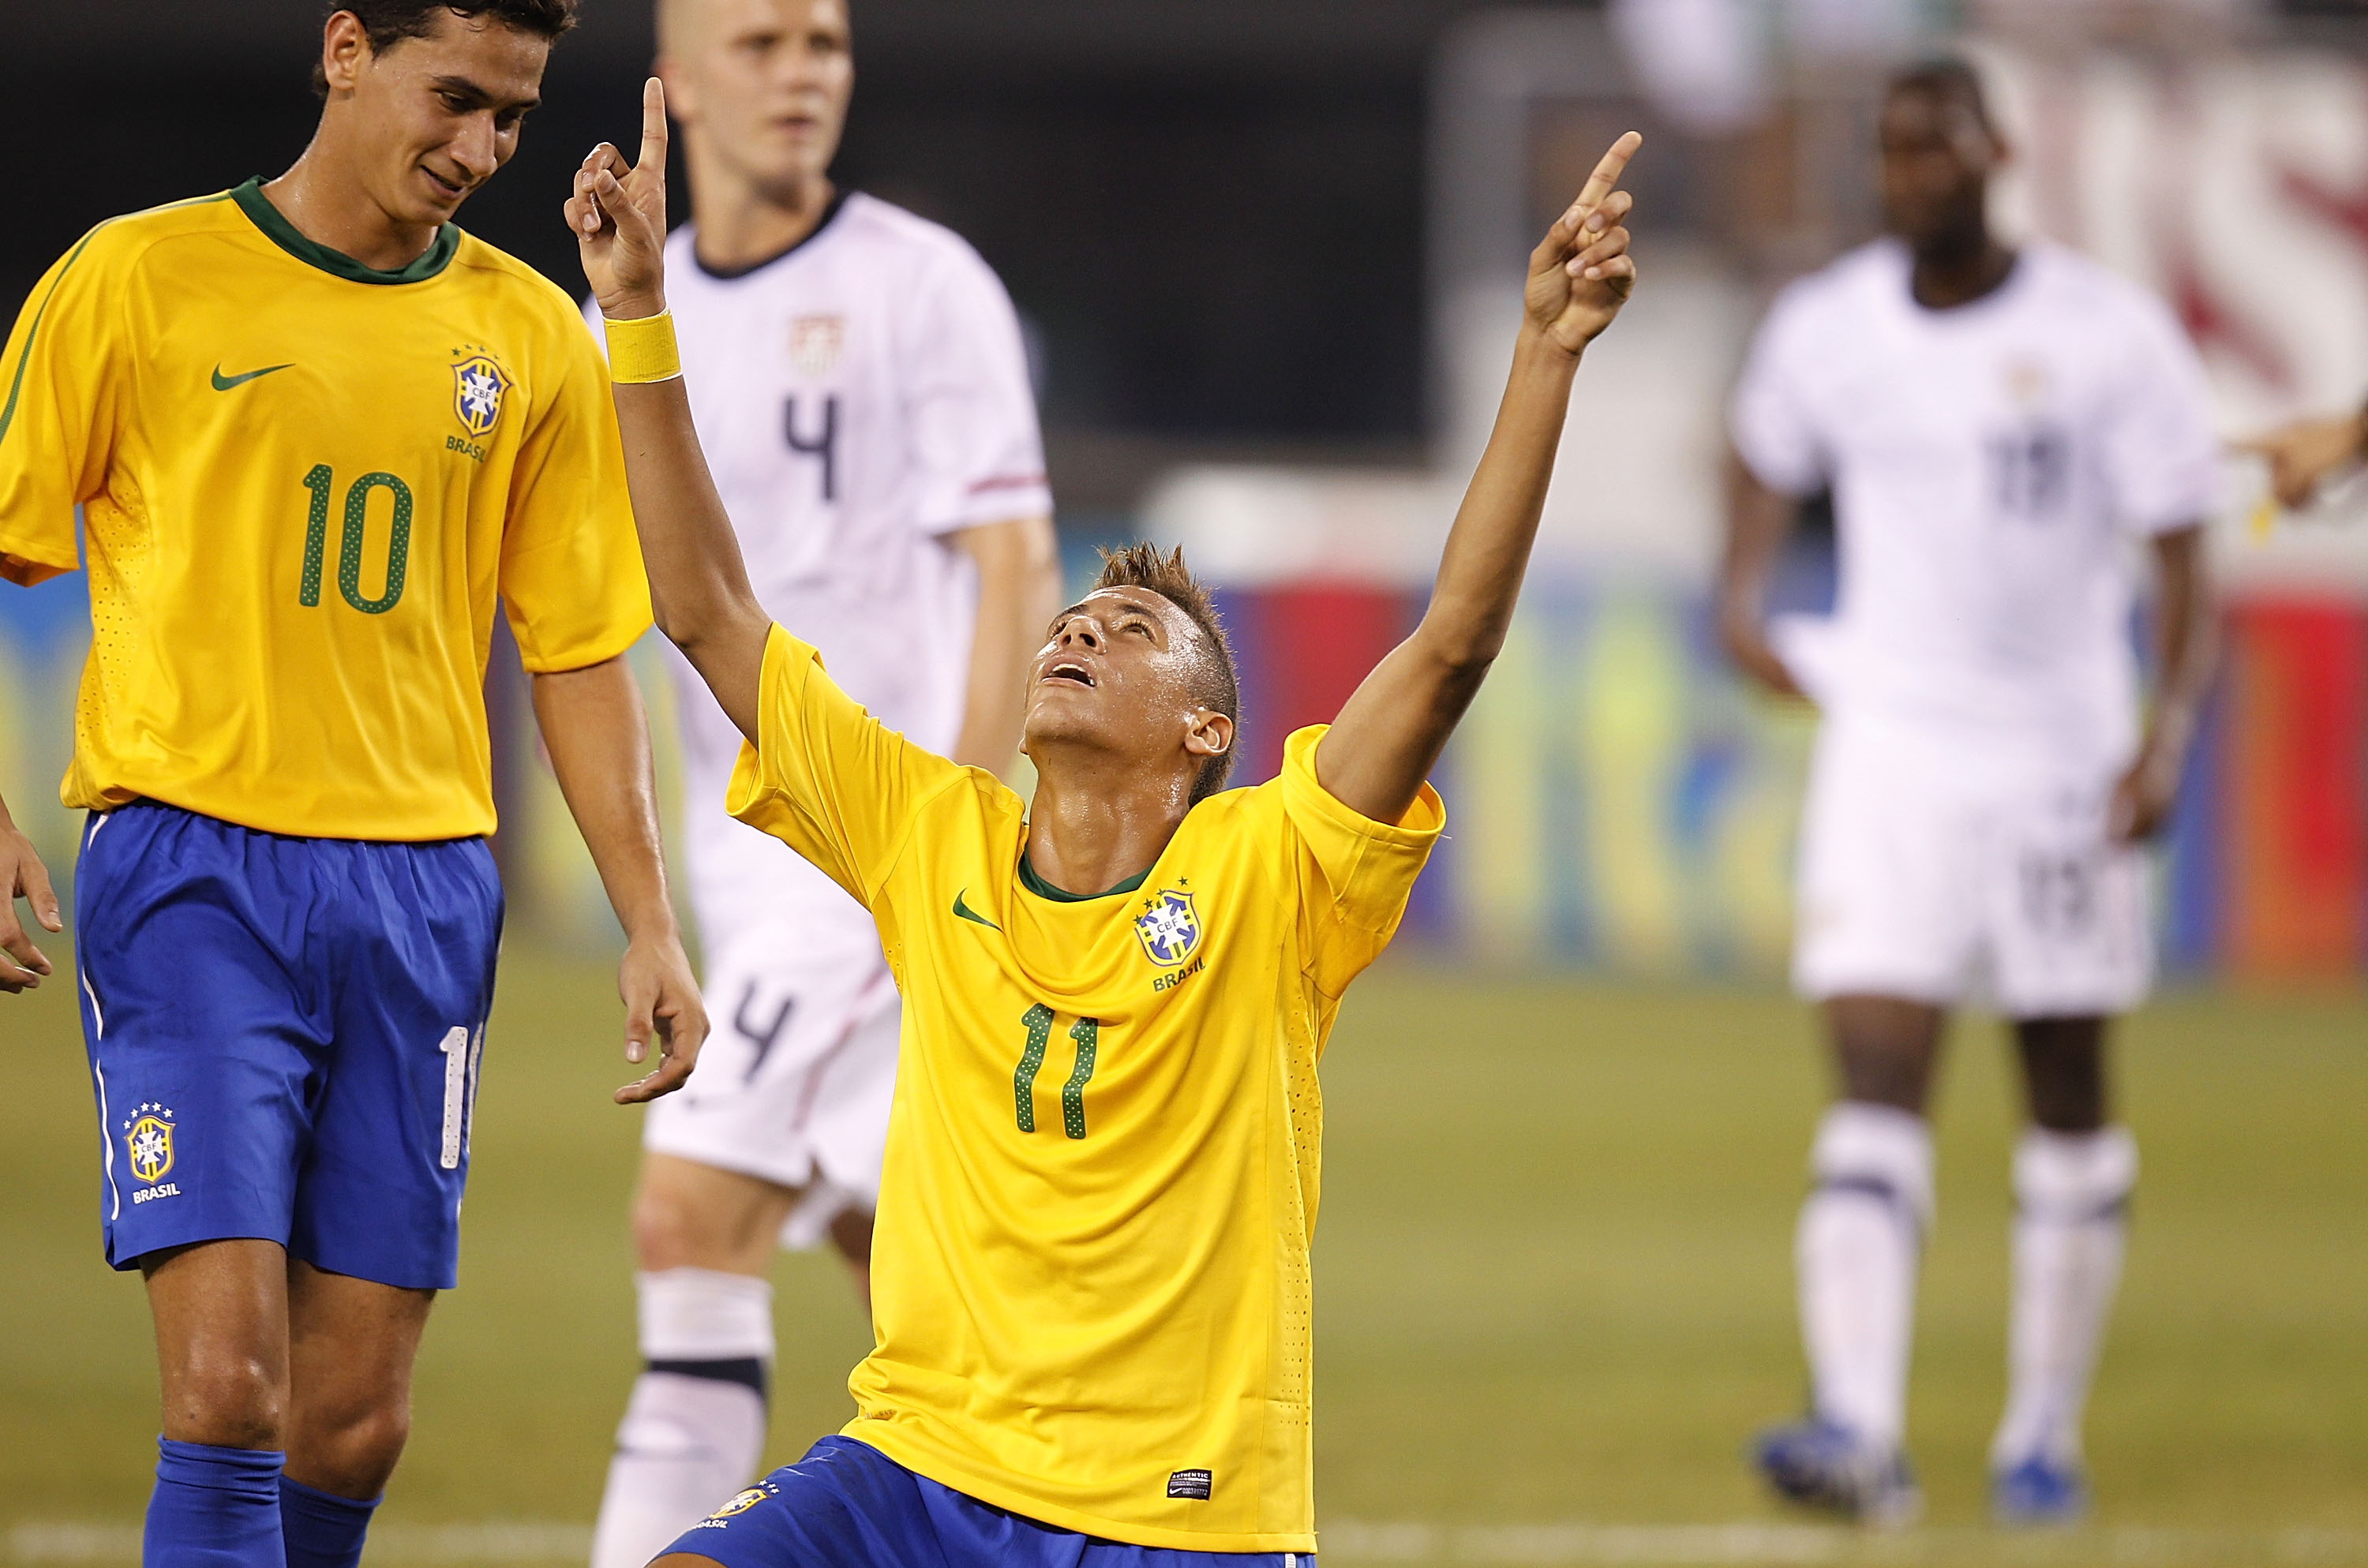 Neymar, Roberto Firmino lead Brazil over USA  2-0 in exhibition